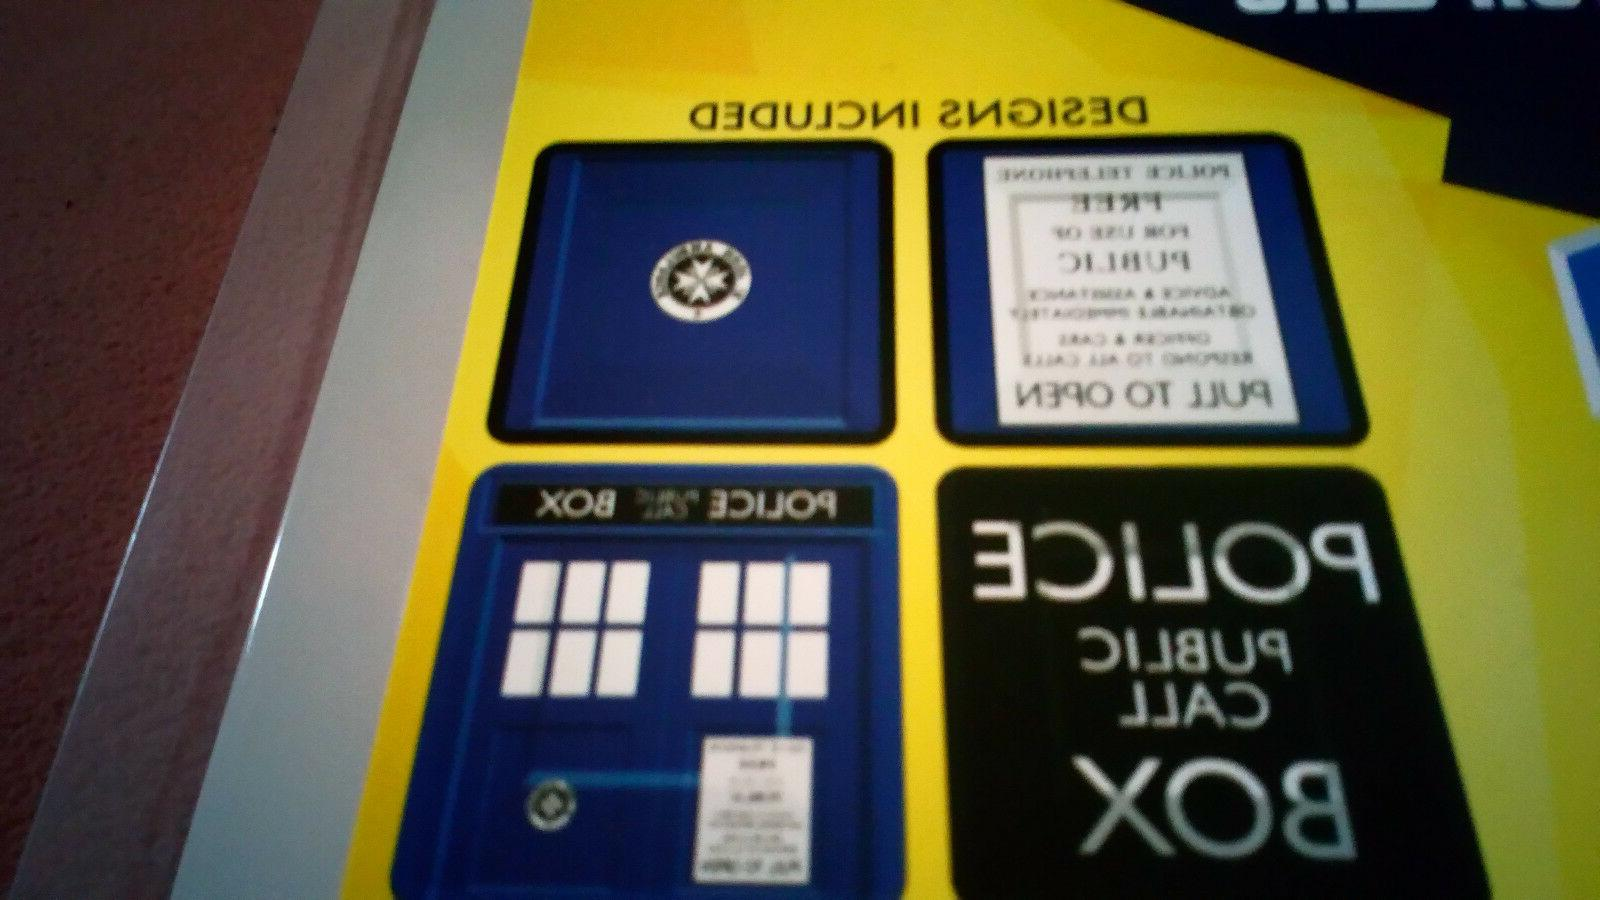 Dr. Who 4 Set of Plates Theme Party